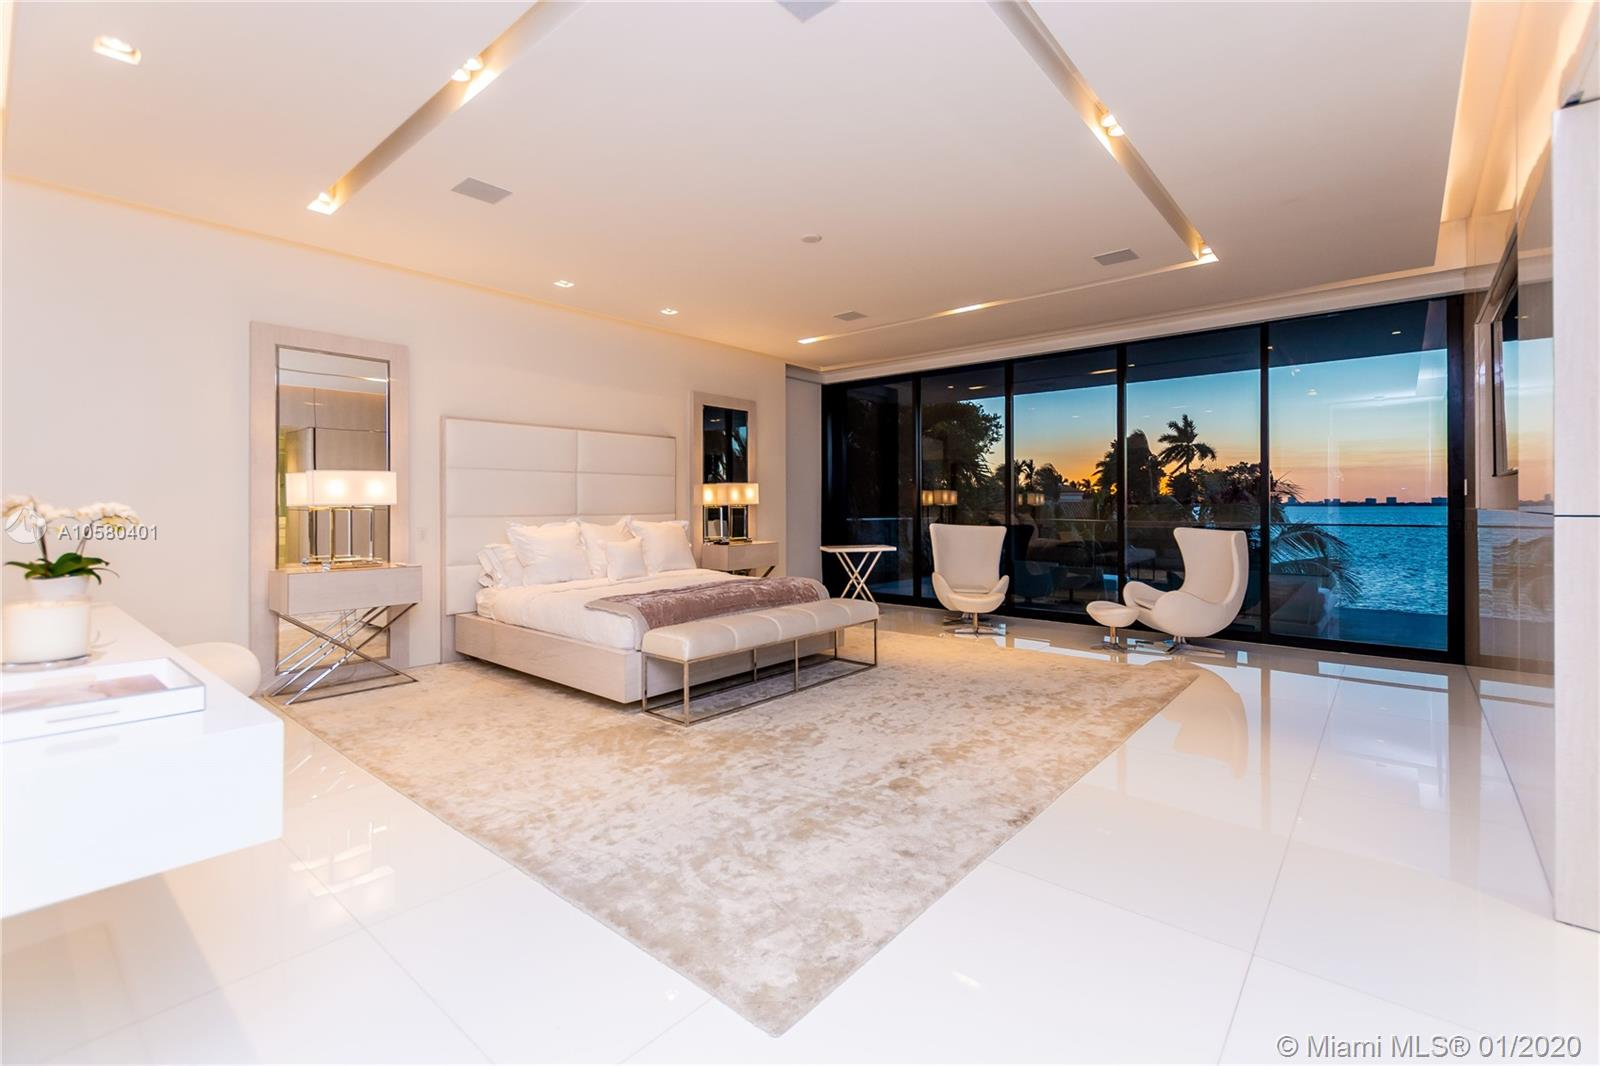 5004 Bay rd- miami-beach-fl-33140-a10580401-Pic26